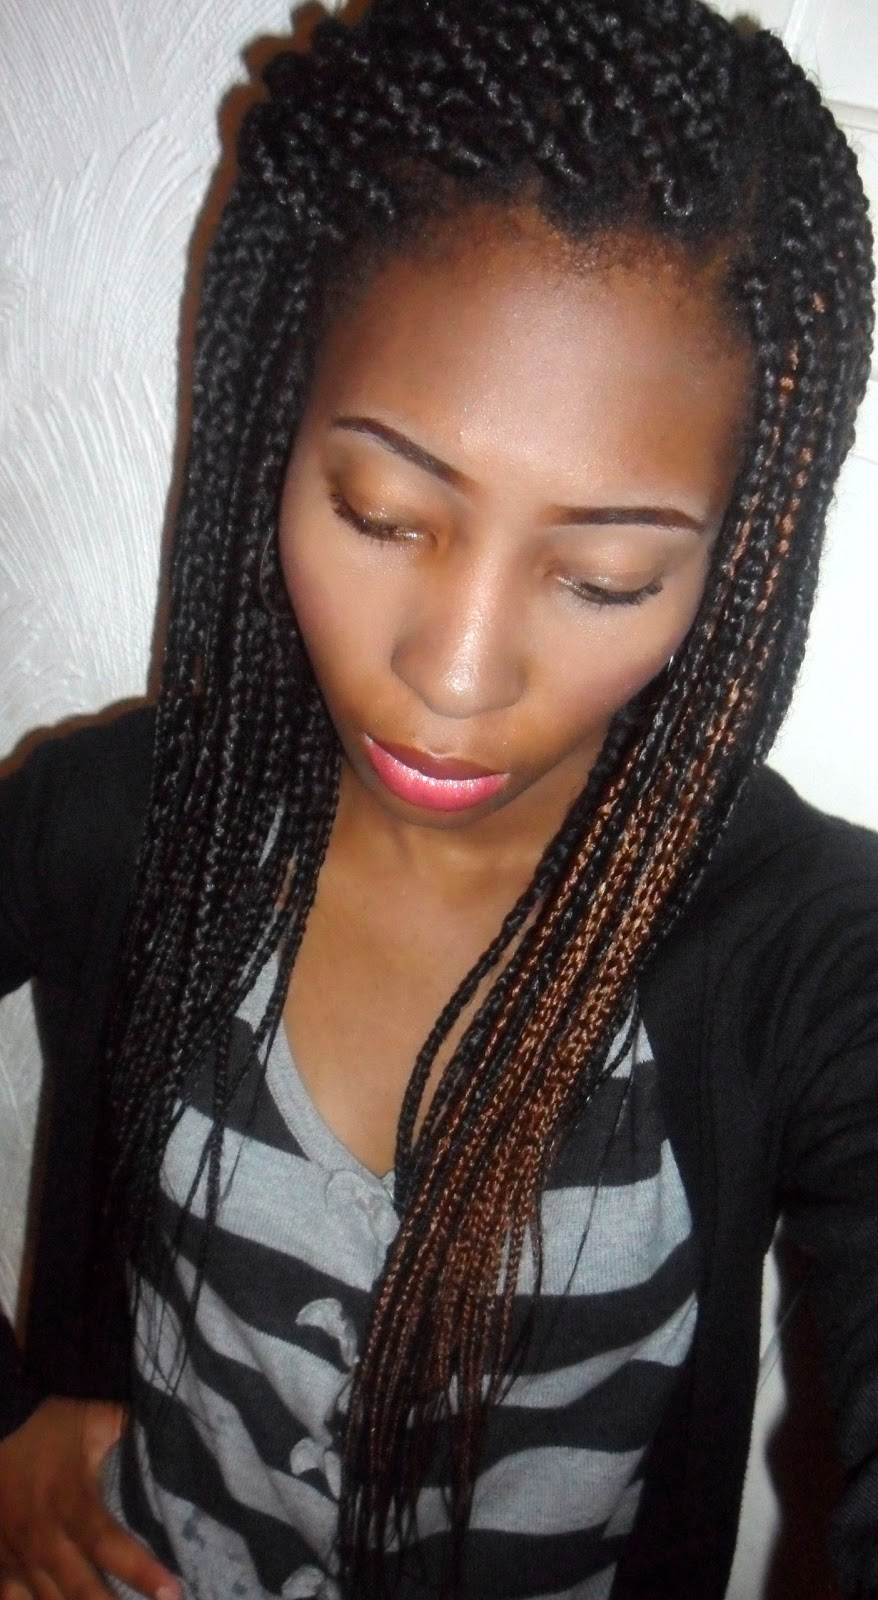 ... these are called box braids or single braids and these particular